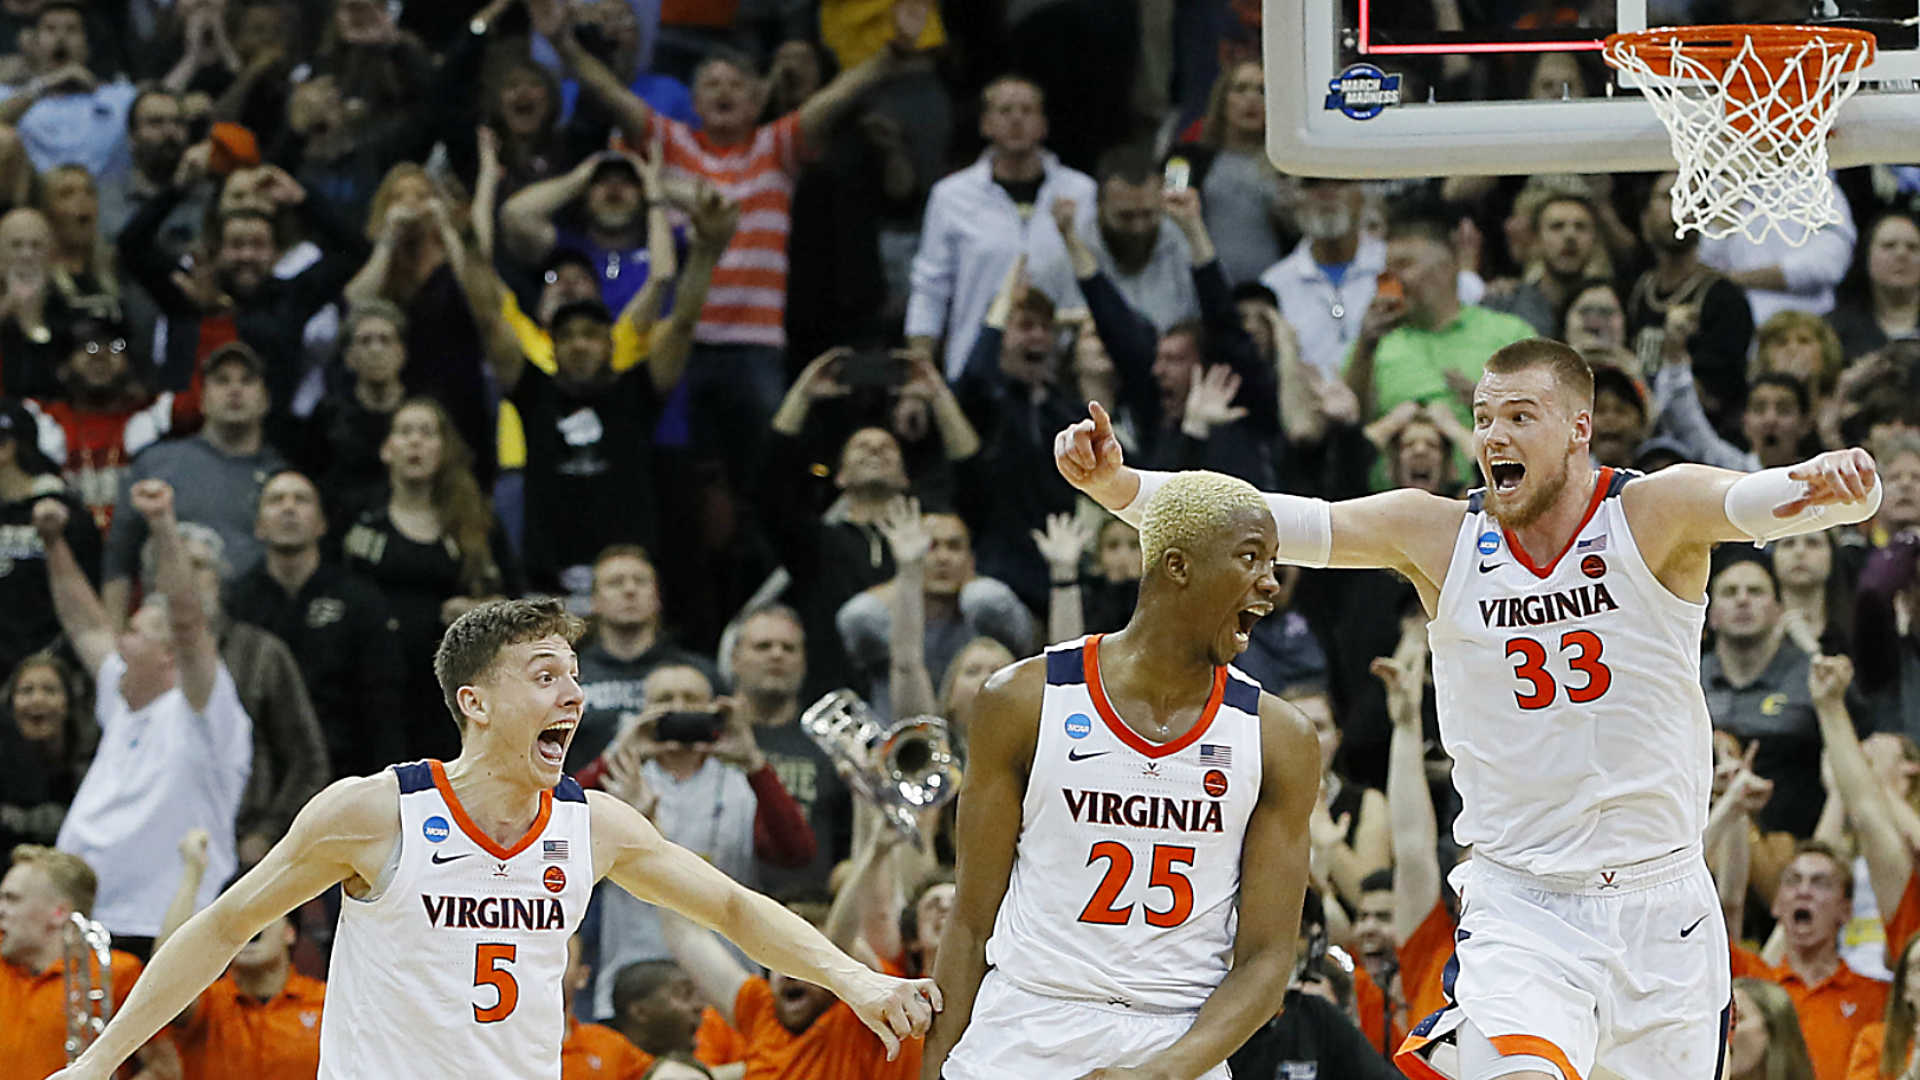 March Madness 2019: UMBC Congratulates Virginia On First